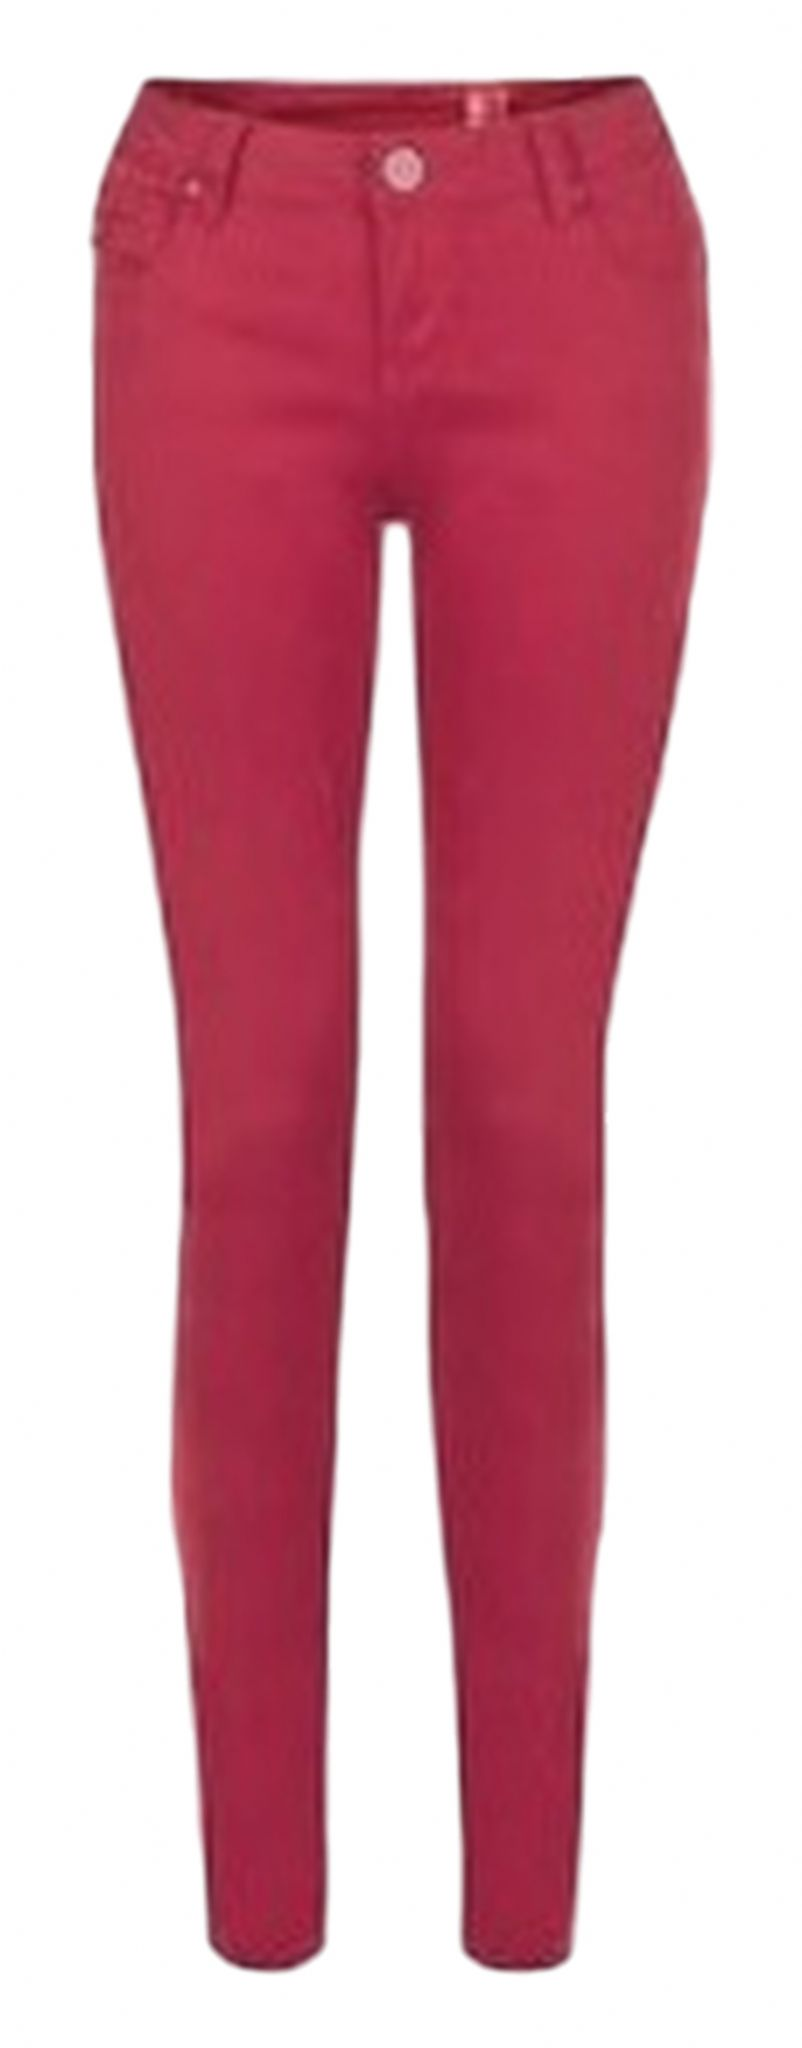 Red skinny jeans new look